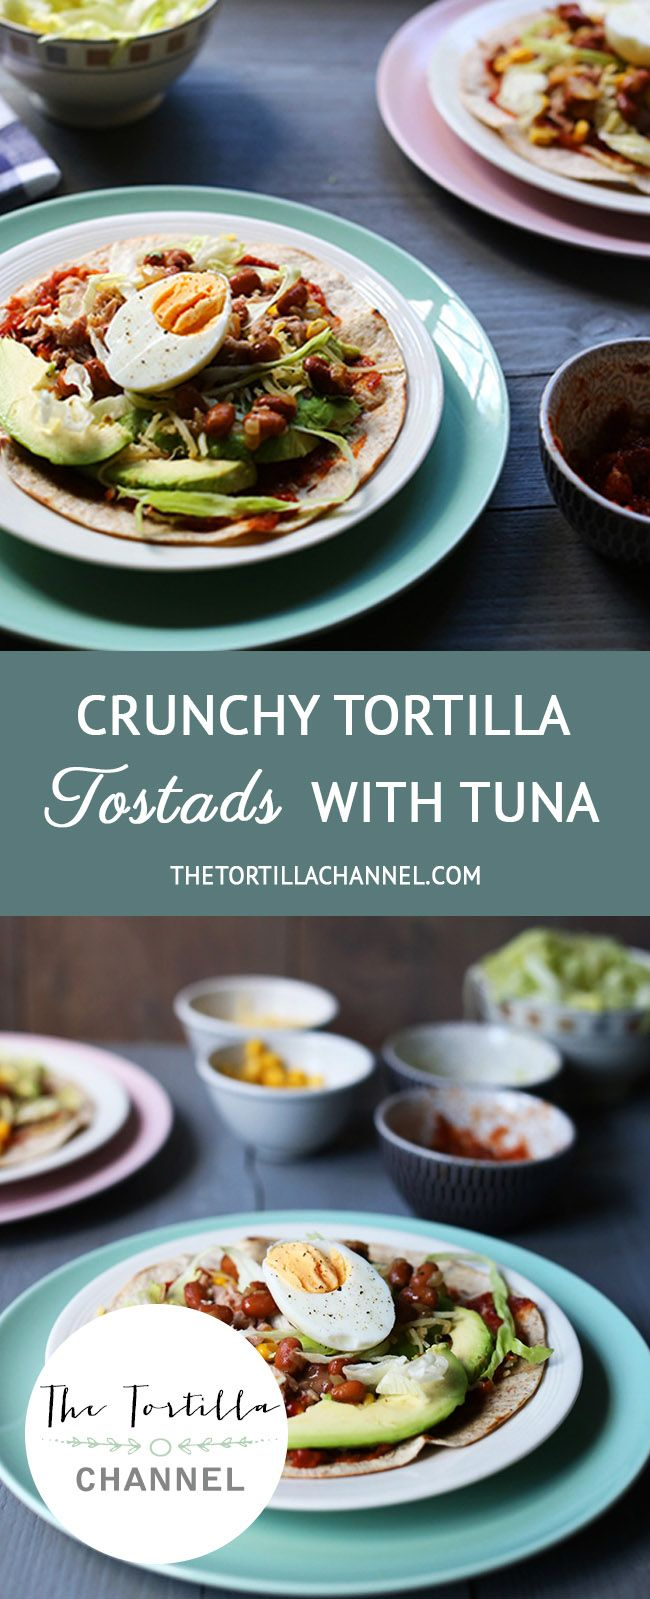 Crunchy tortilla tostada with tuna are made with lots of vegetables and salsa and brown beans and tuna and avocado and egg and guacamole. Lets get started! #thetortillachannel